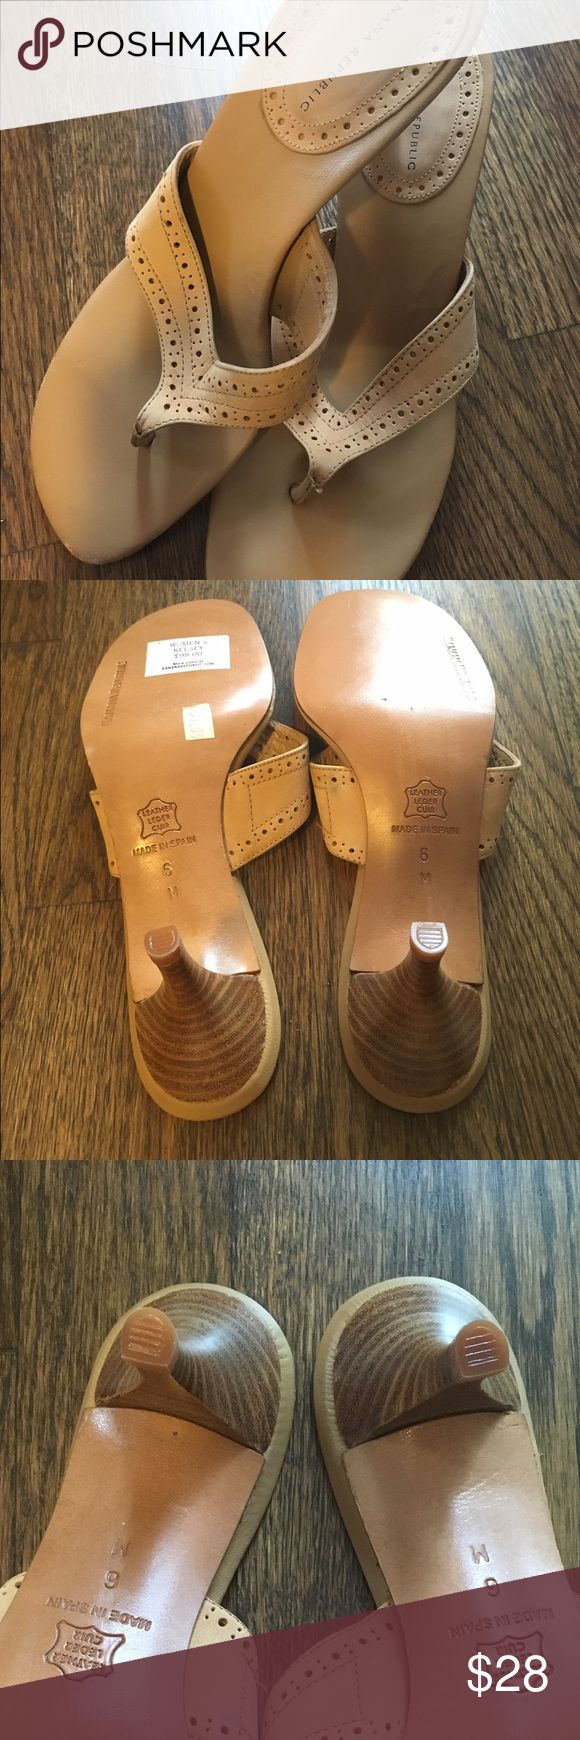 Banana Republic tan sandals Open toe sandals with 1/2 inch heel. Worn for demo once. Banana Republic Shoes Sandals